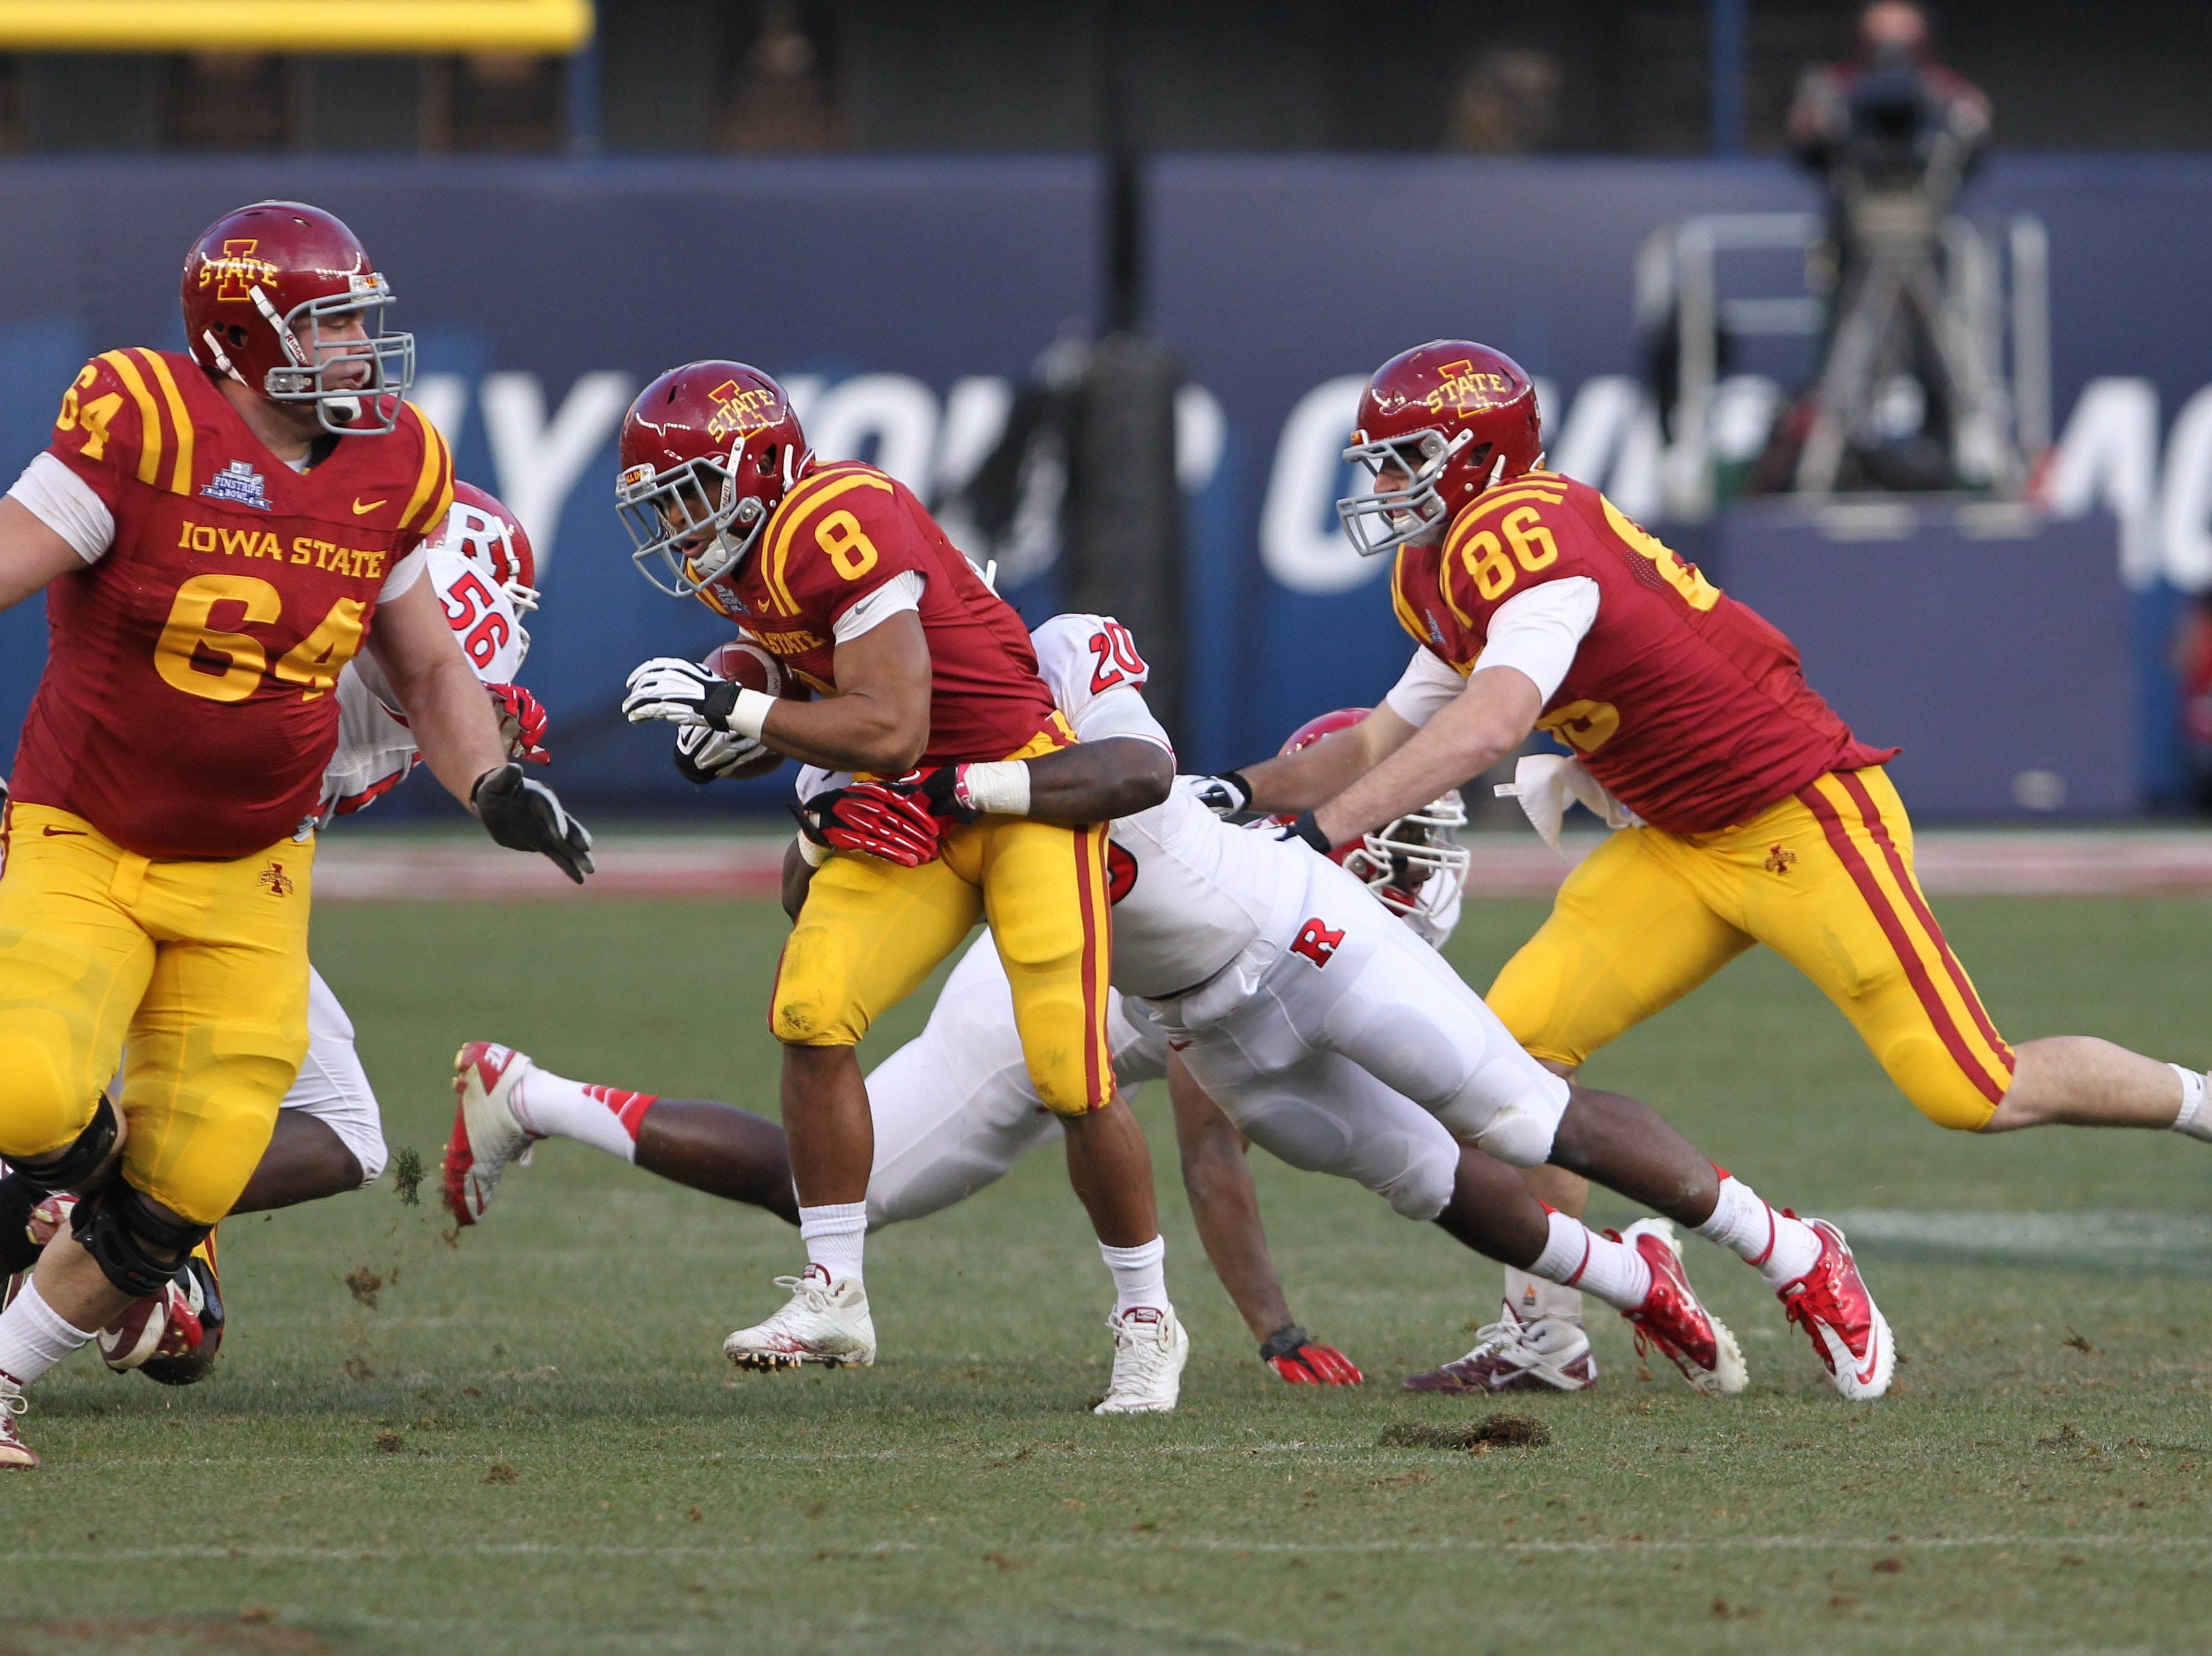 Iowa State Cyclones running back James White (8) carries the ball as Rutgers Scarlet Knights defensive back Khaseem Greene (20) comes in for the tackle during the first quarter of the 2011 Pinstripe Bowl at Yankee Stadium.